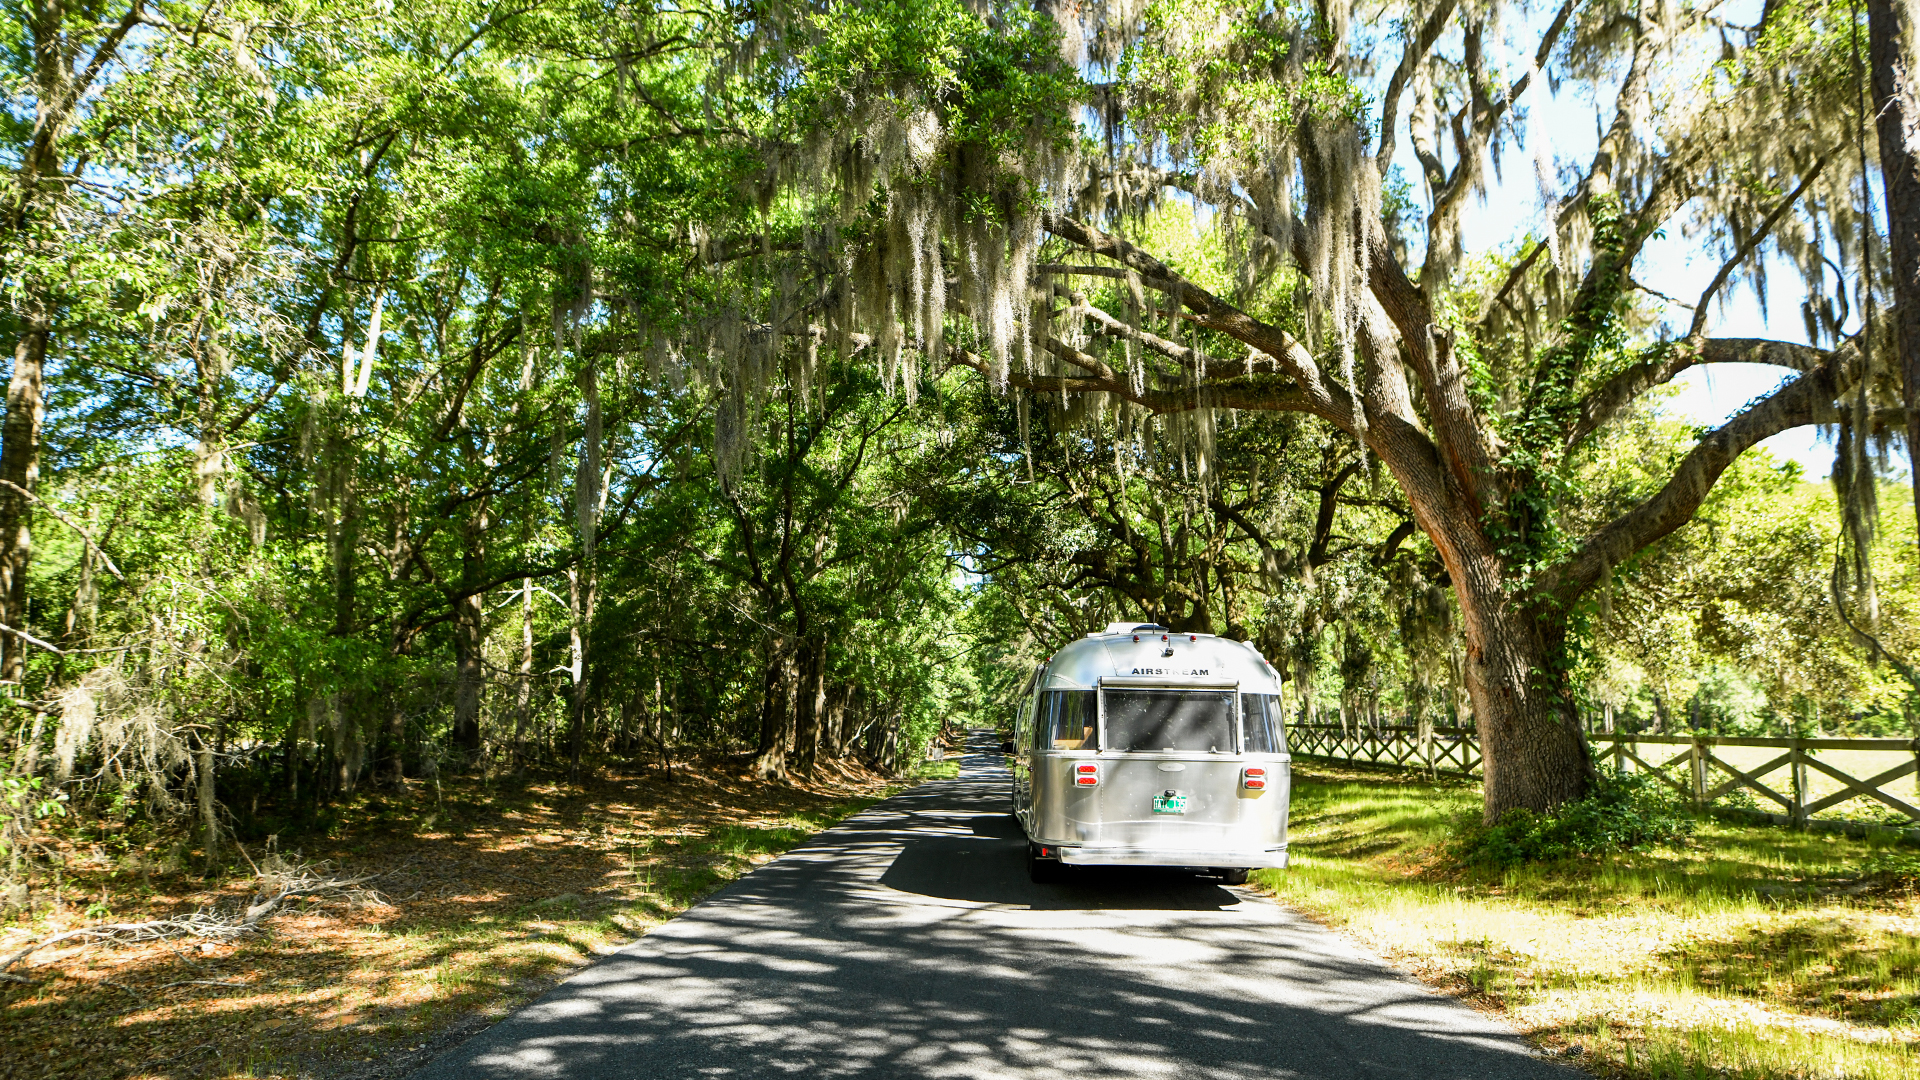 Airstream-Flying-Cloud-on-drive-with-trees